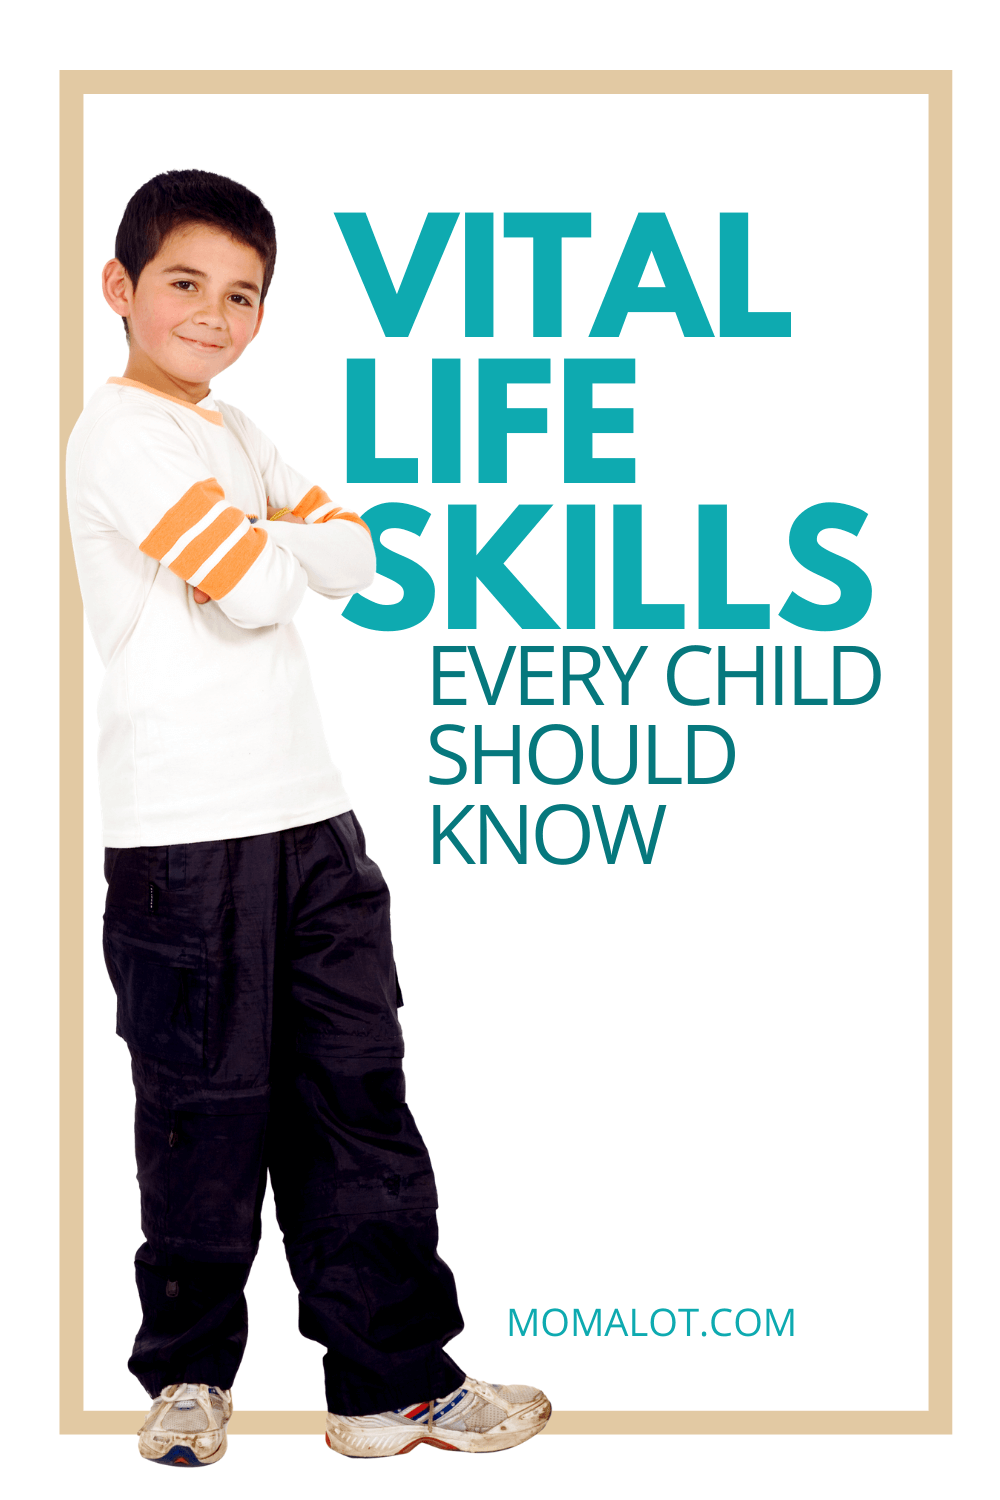 vital life skills every child should know